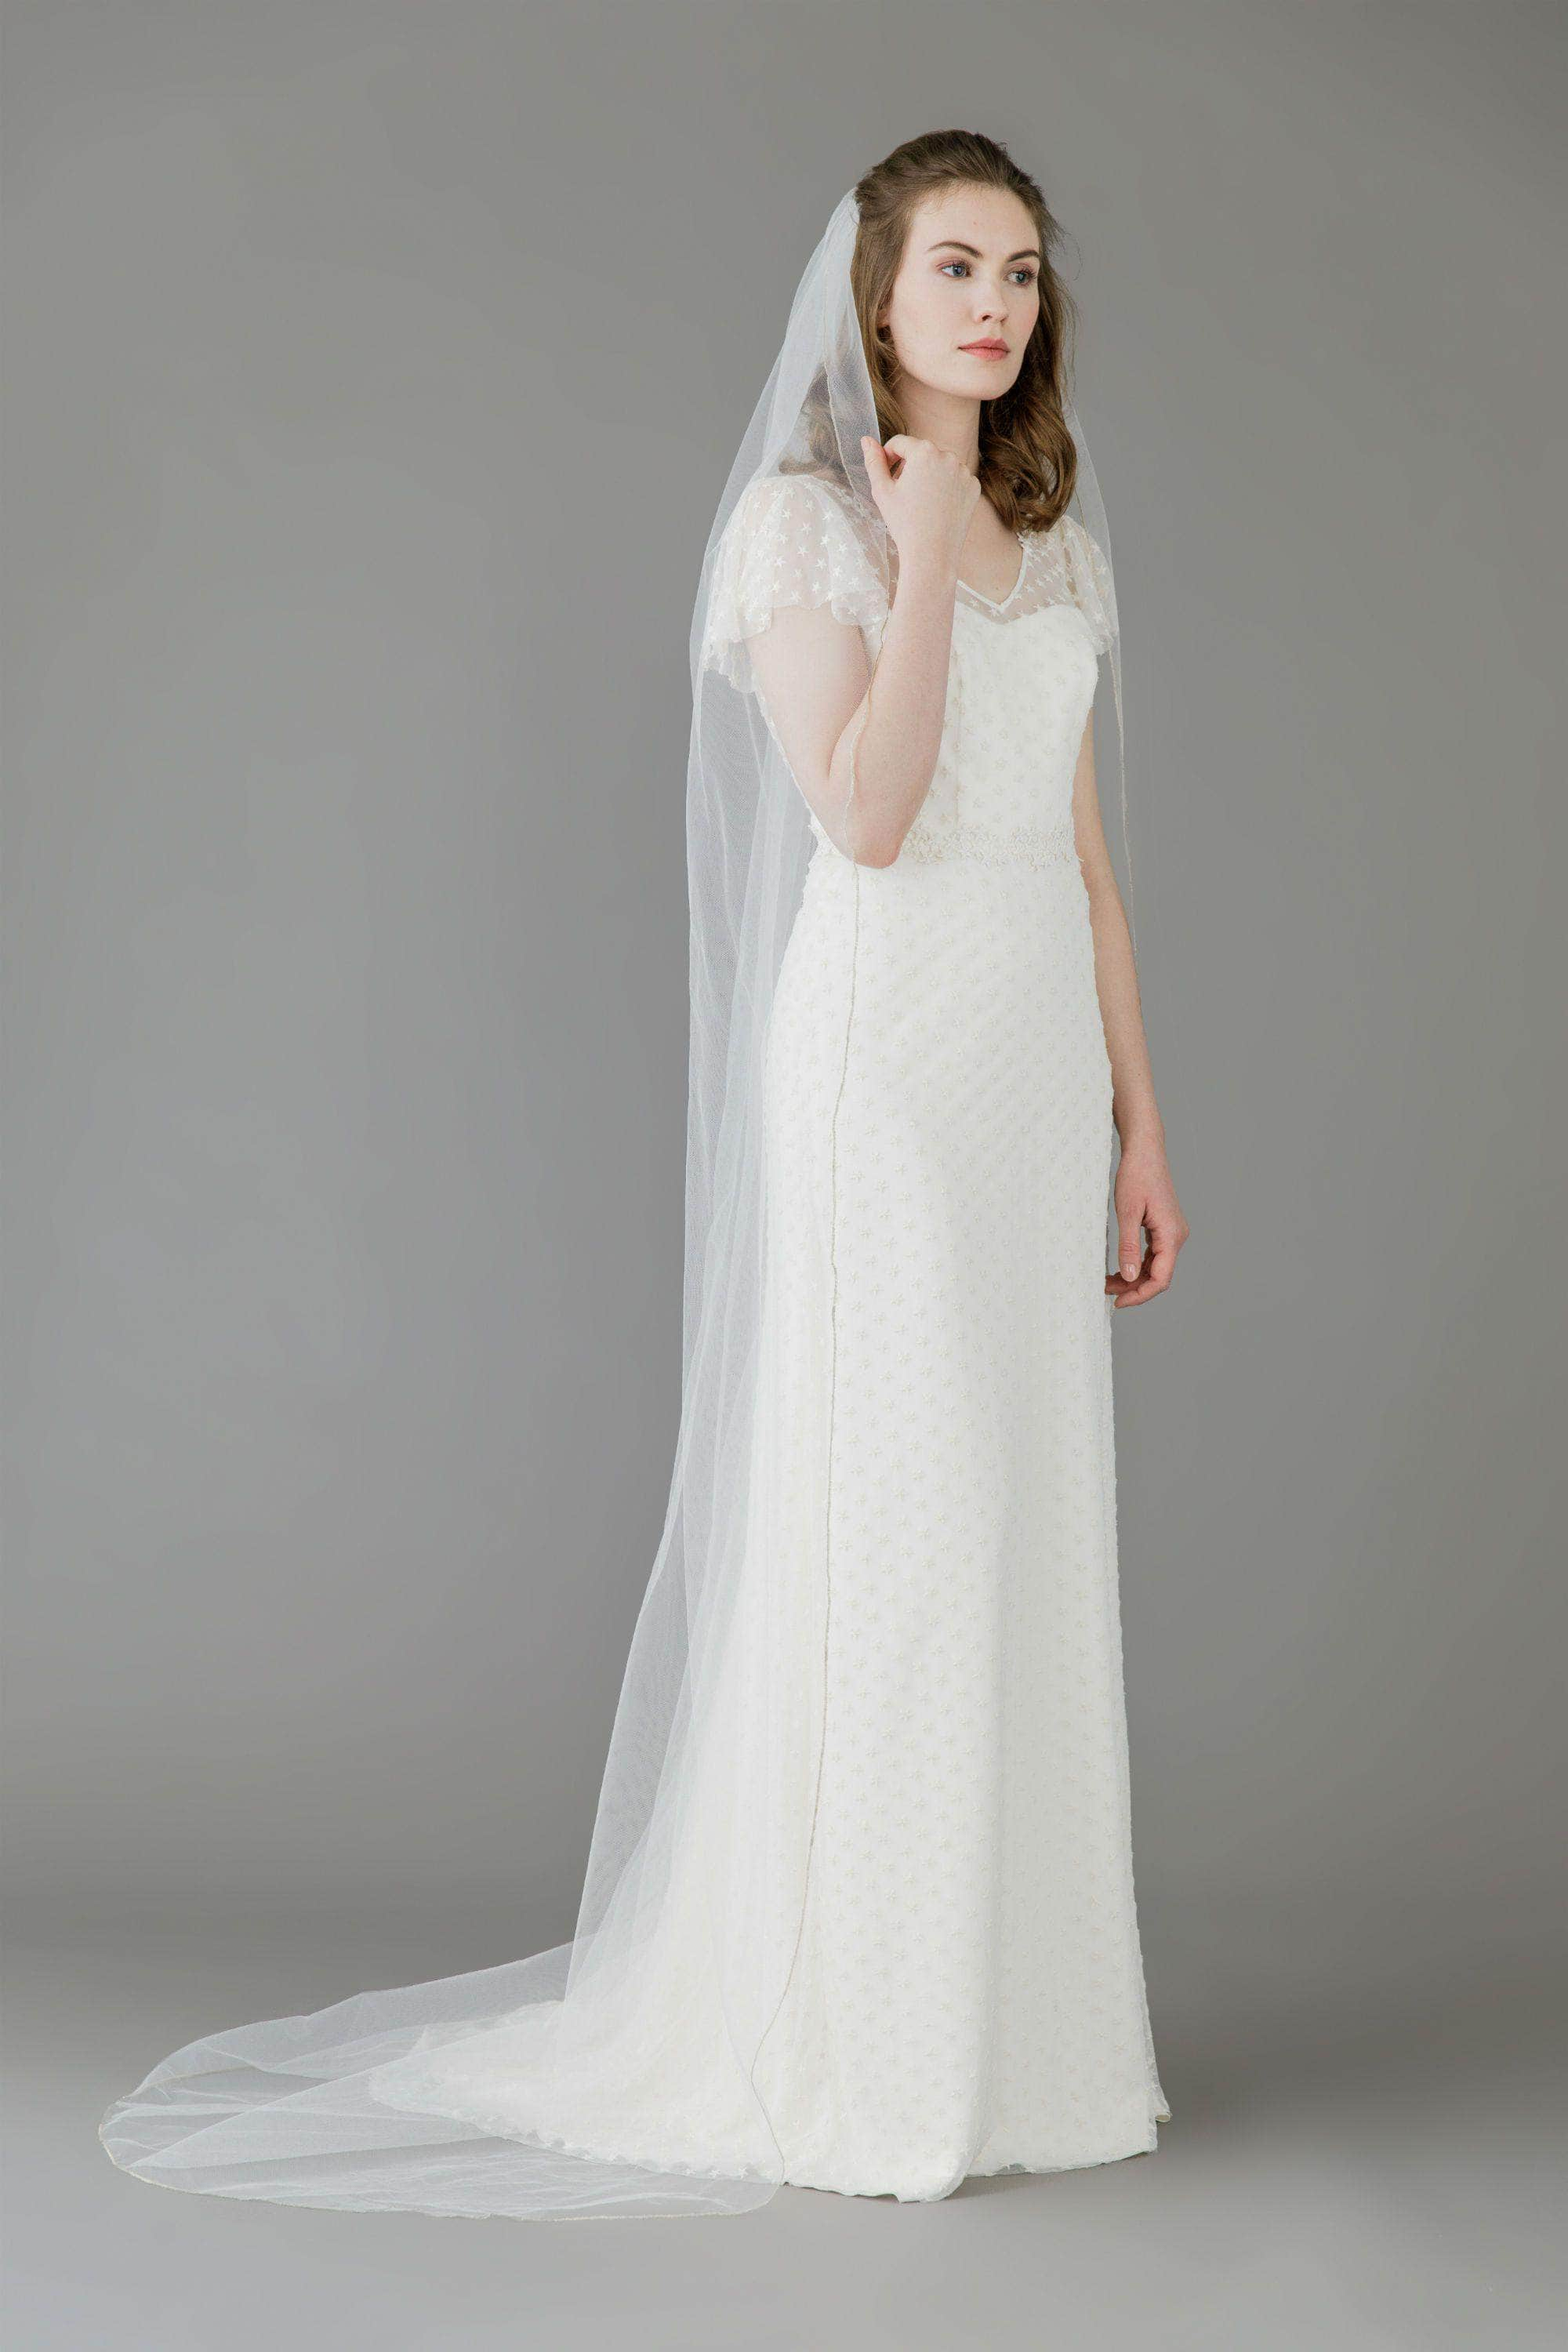 Wedding Veil Pencil edge single tier wedding veil - 'Elsie'